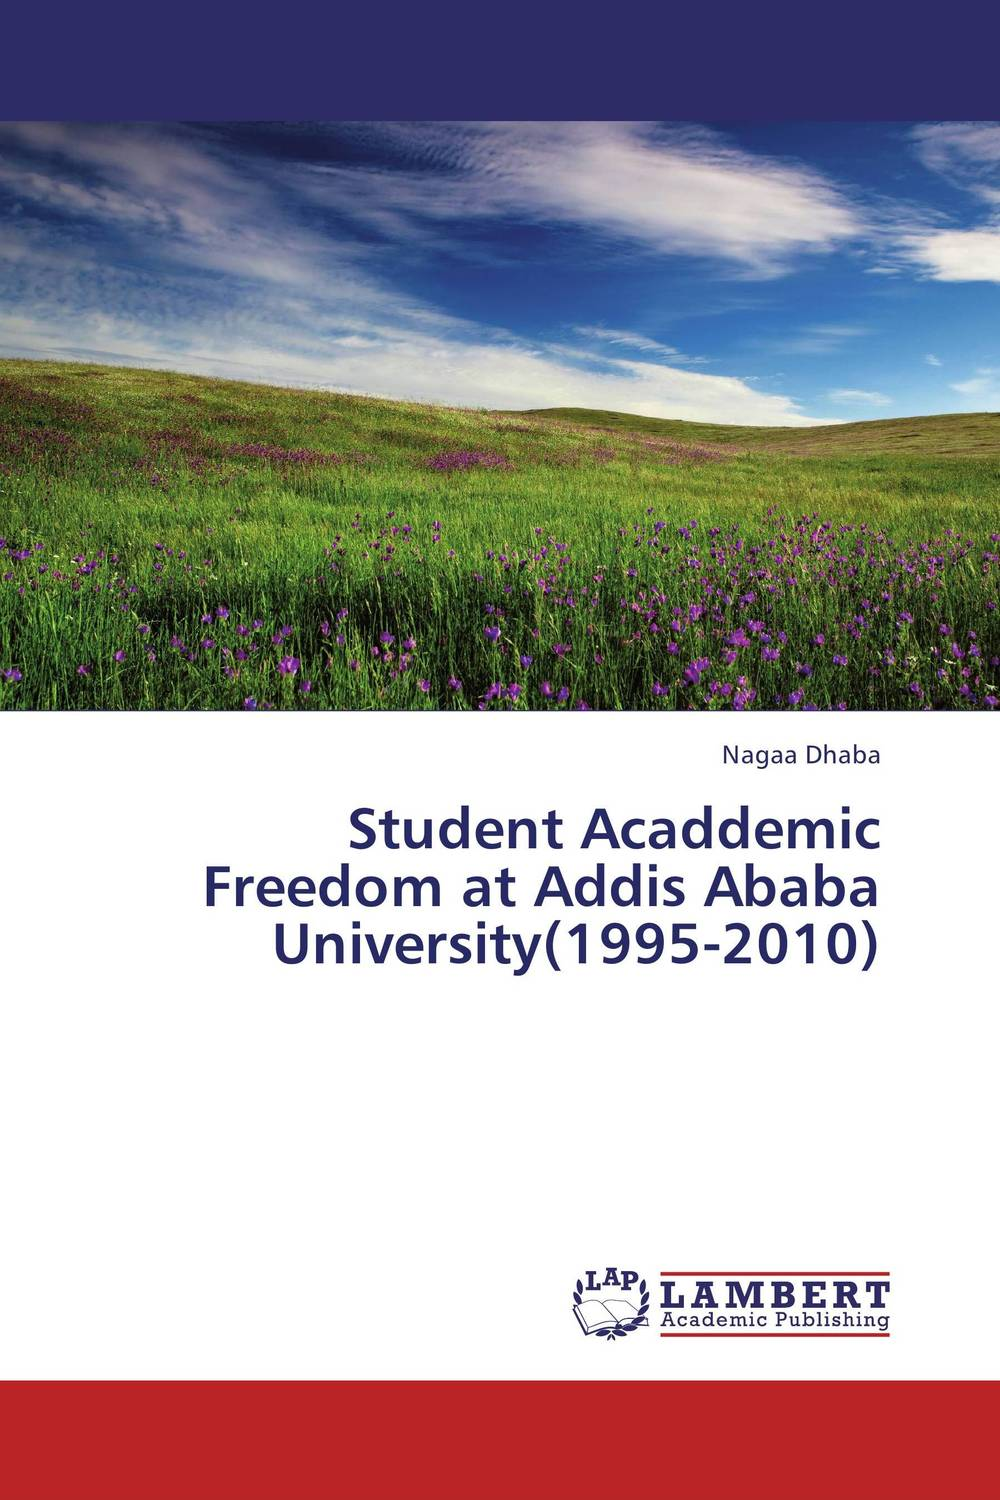 Student Acaddemic Freedom at Addis Ababa University(1995-2010)